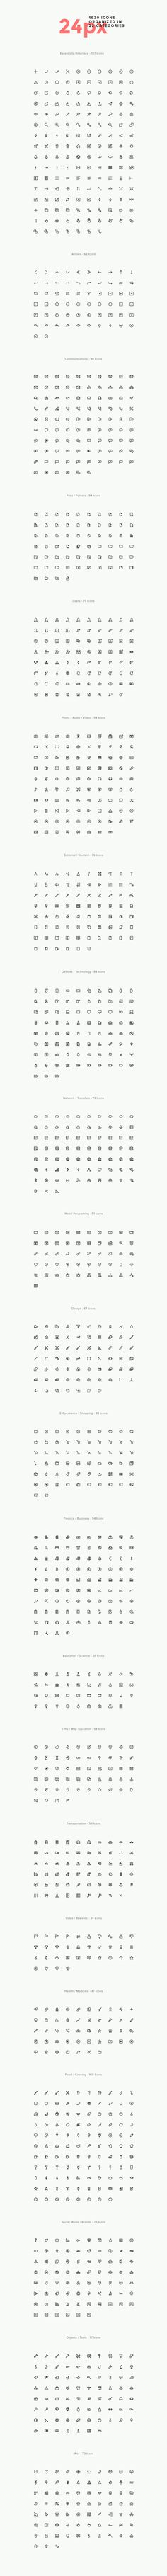 Simple Line Icons Pro by GraphicBurger on Creative Market